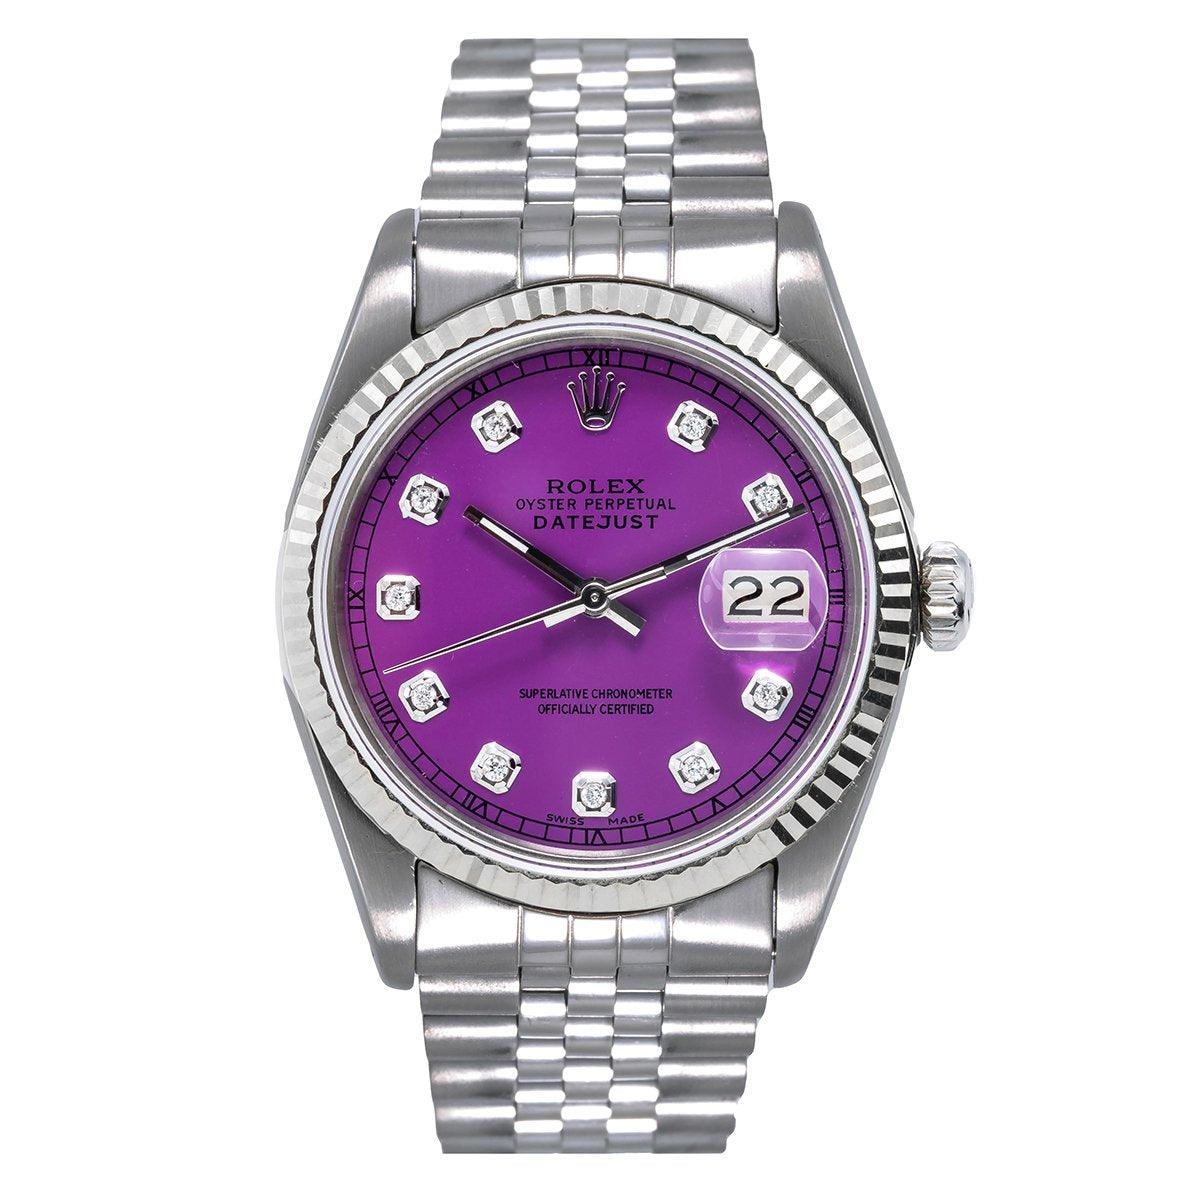 Rolex Datejust Diamond Watch, 116200 36mm, Purple Dial with Diamond Hour Markers